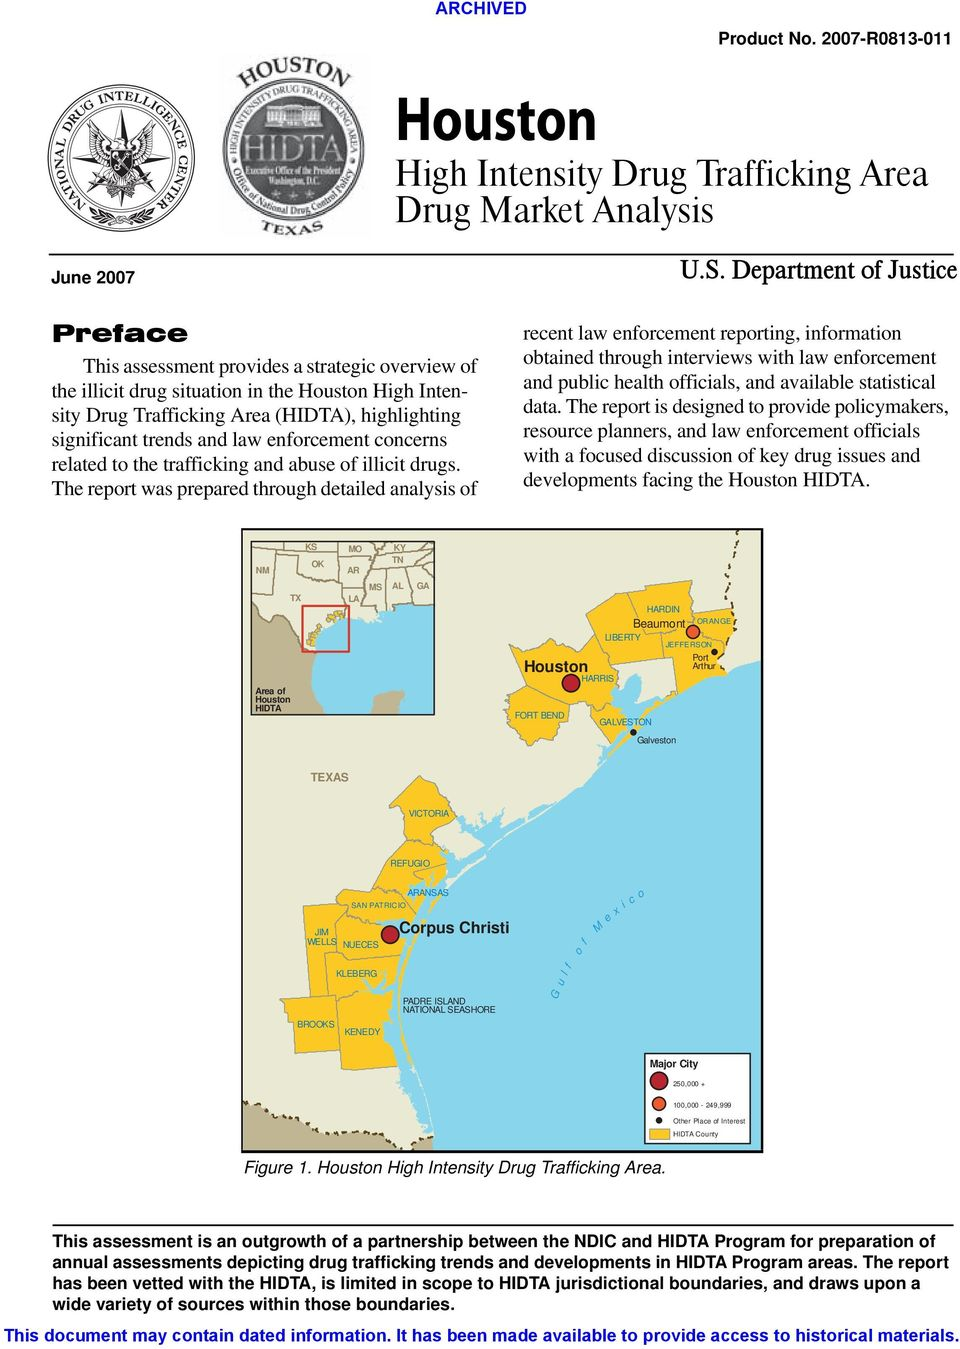 Intensity Drug Trafficking Area (HIDTA), highlighting significant trends and law enforcement concerns related to the trafficking and abuse of illicit drugs.